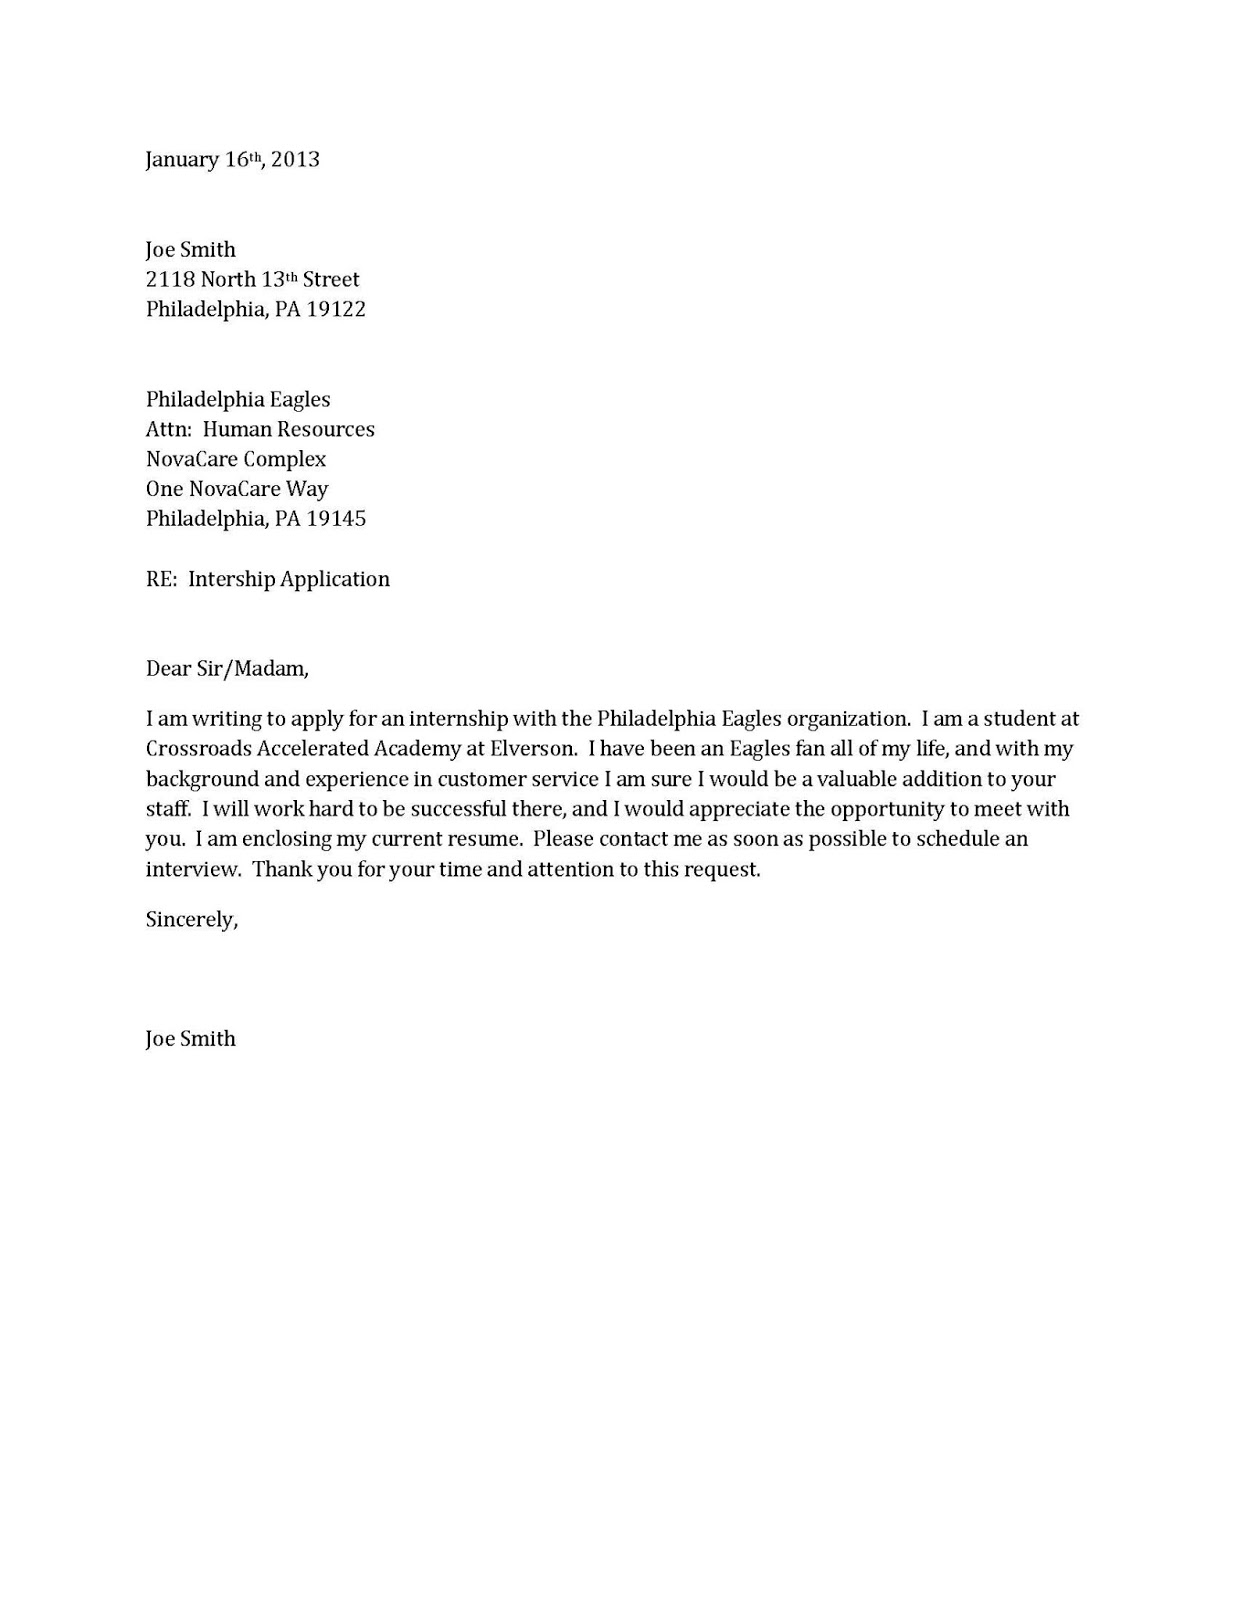 Basic cover letter template altavistaventures Images